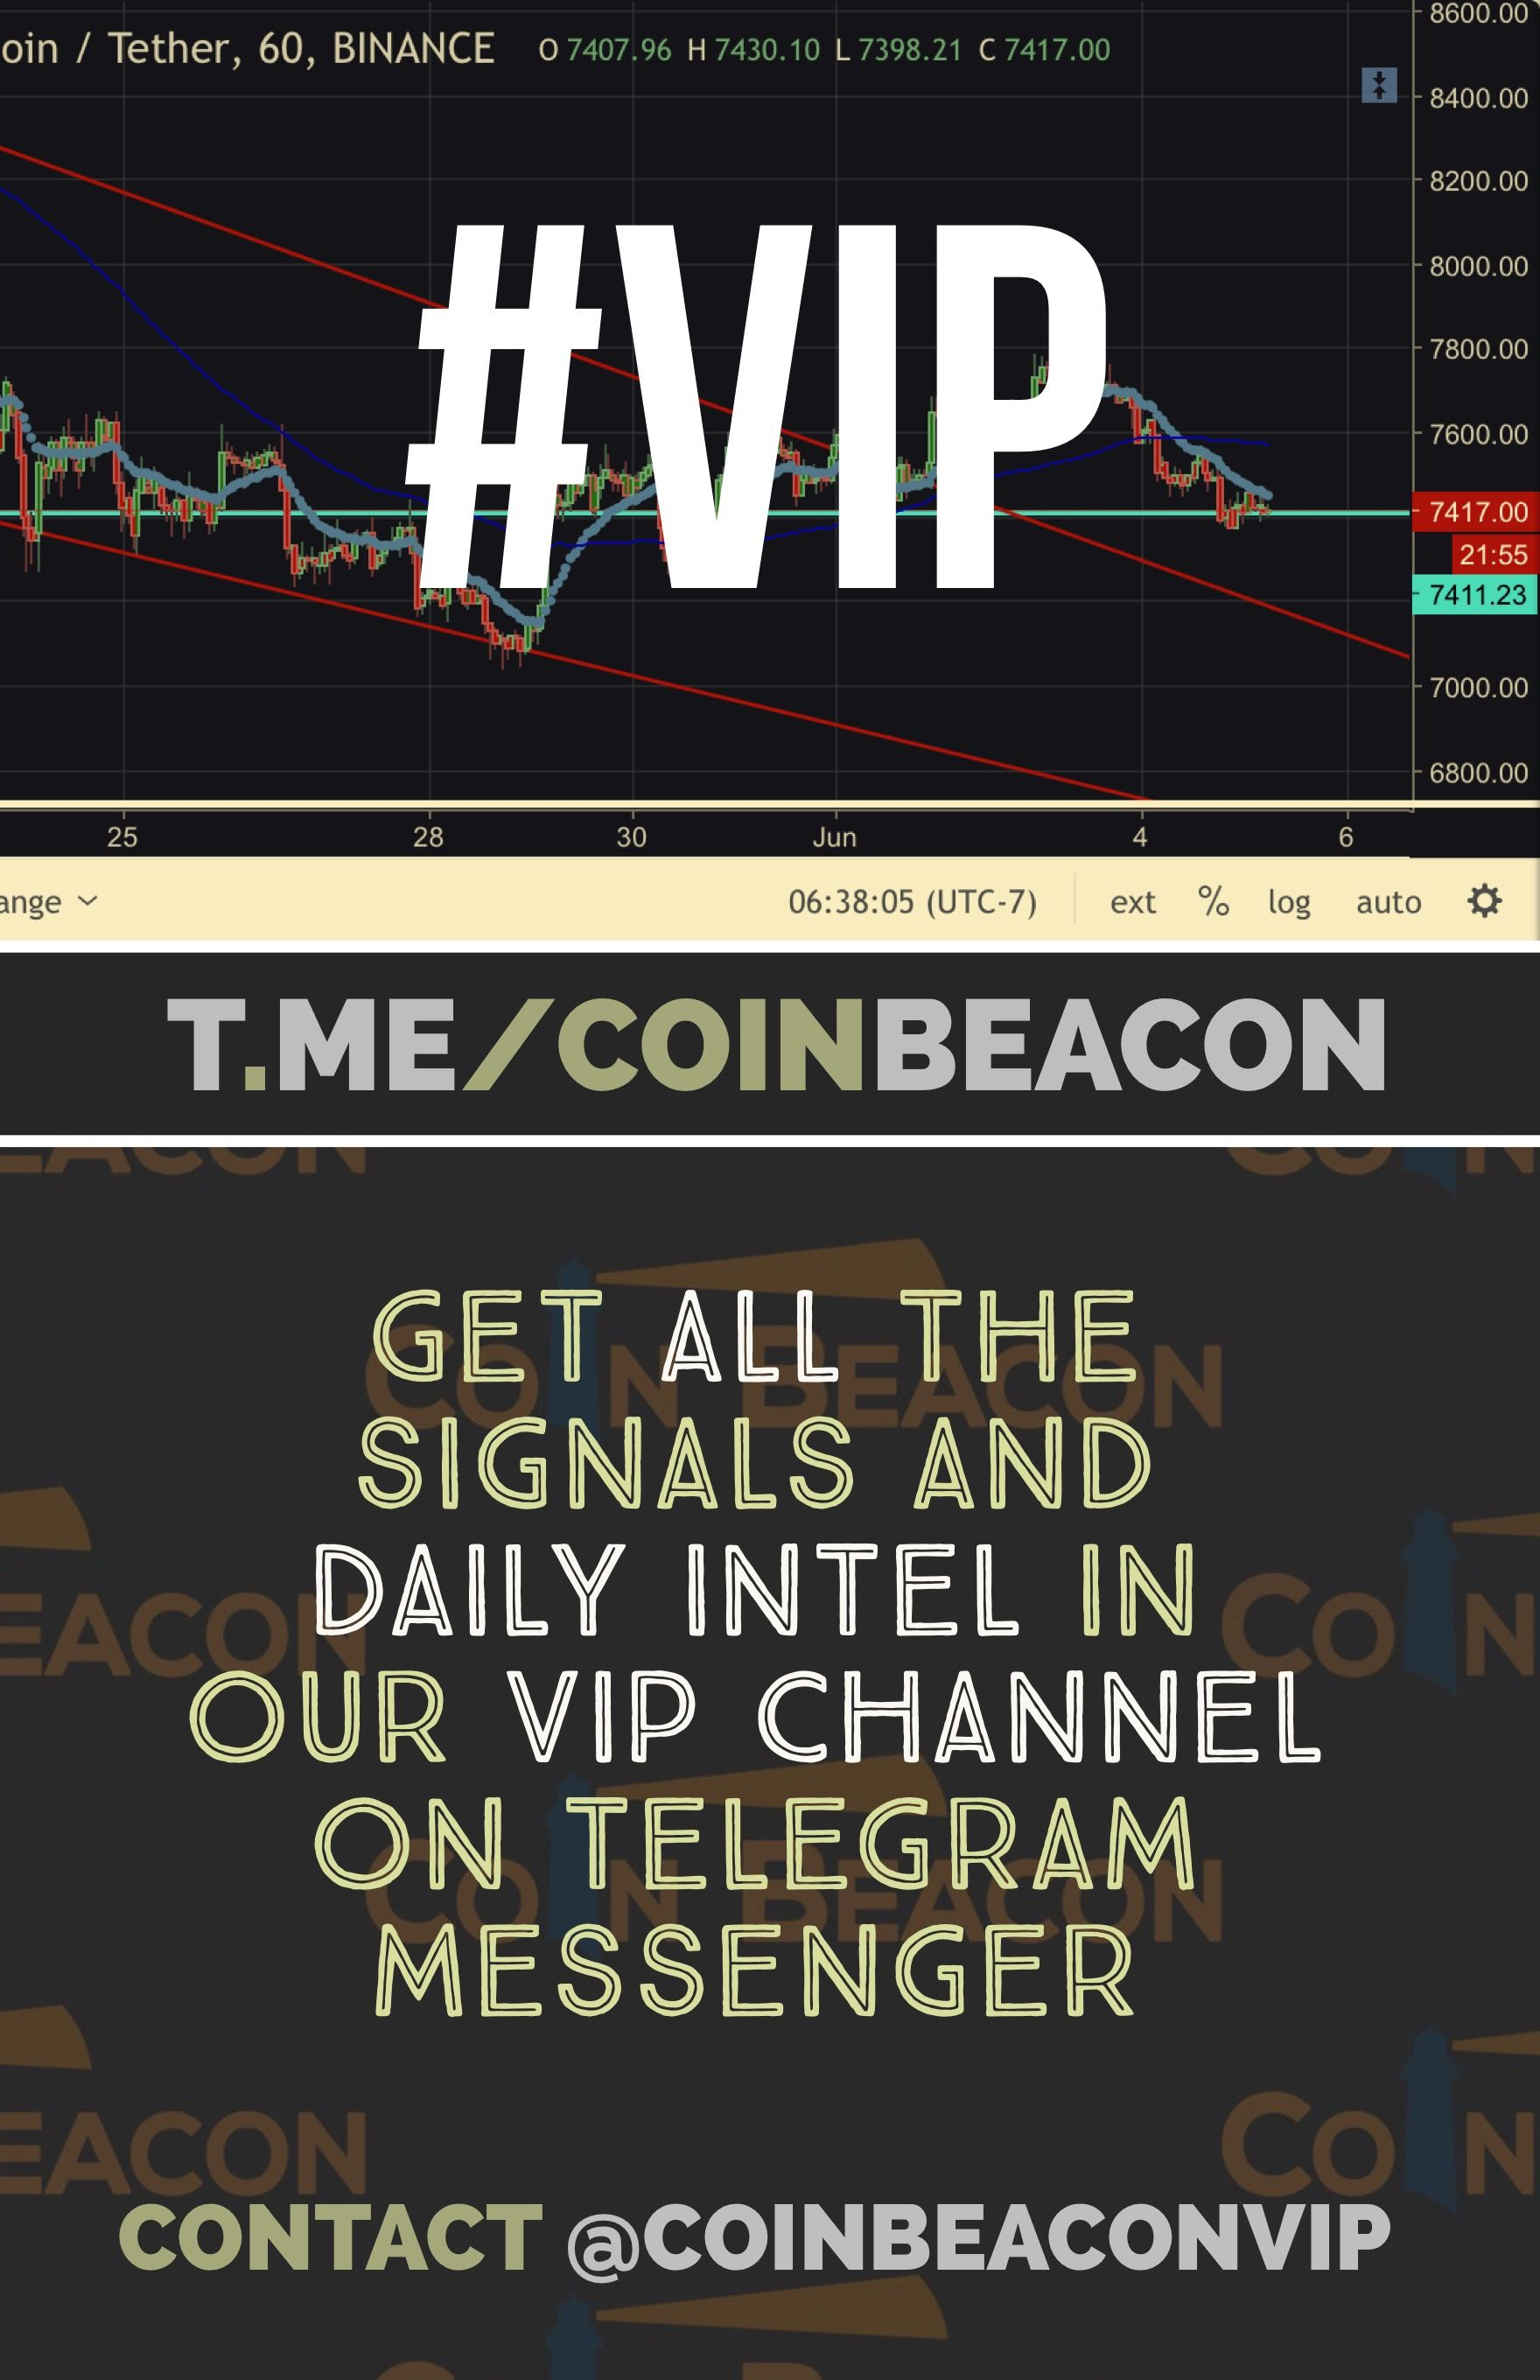 Increase Your Profits Join Our Vip Channel On Telegram Https T